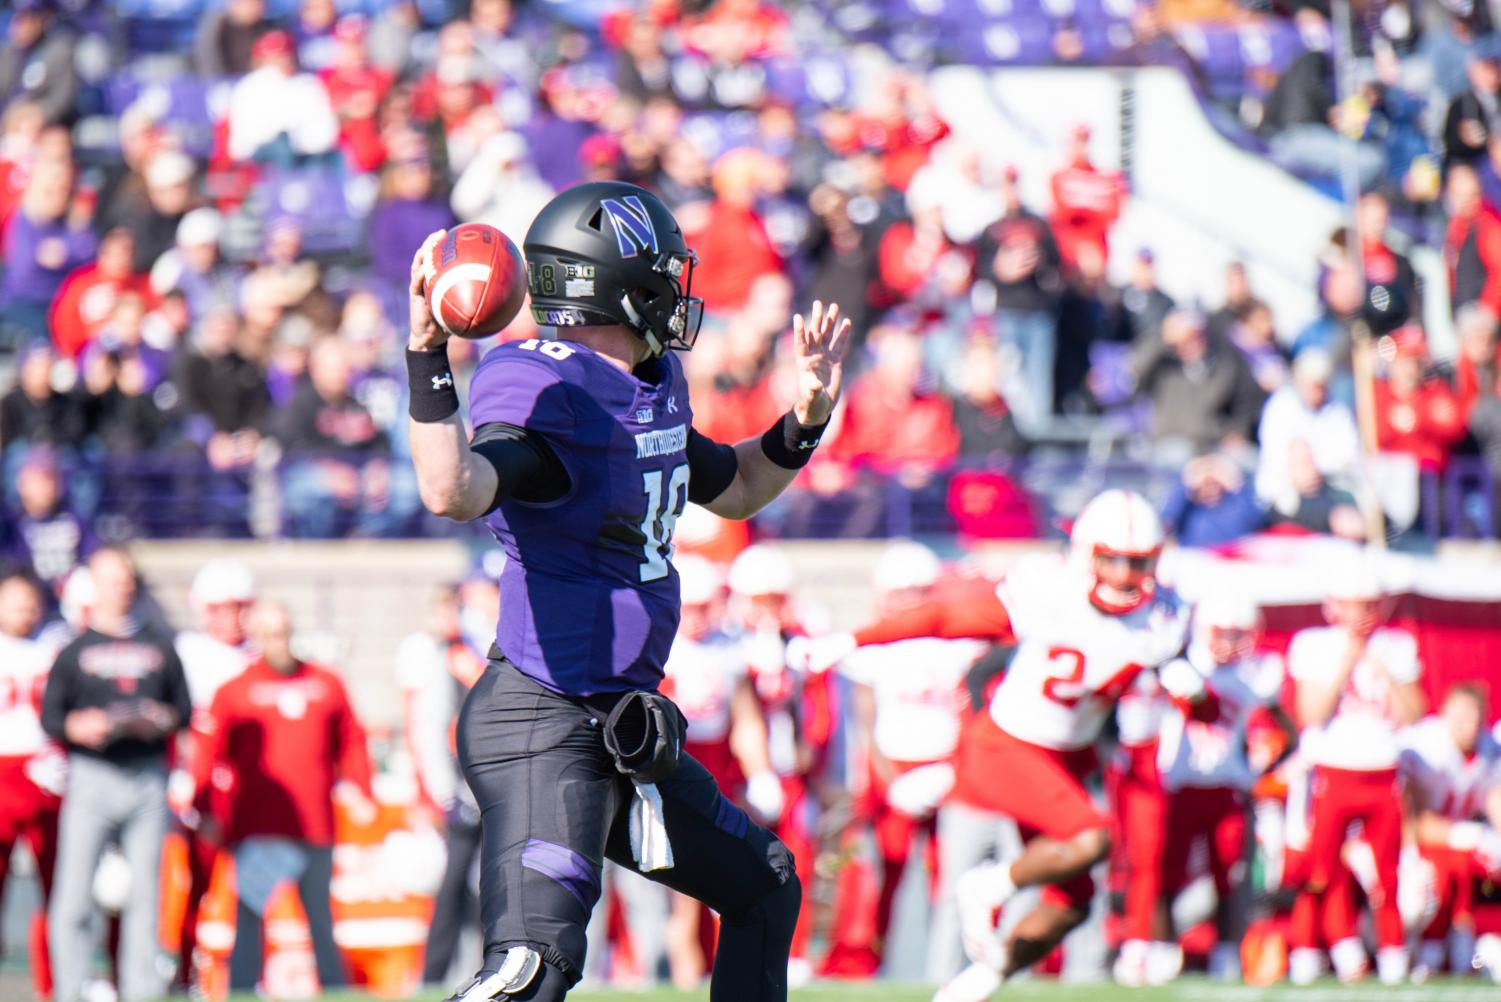 Clayton Thorson fires a pass. The senior quarterback tallied a career-high 455 yards in Saturday's win.